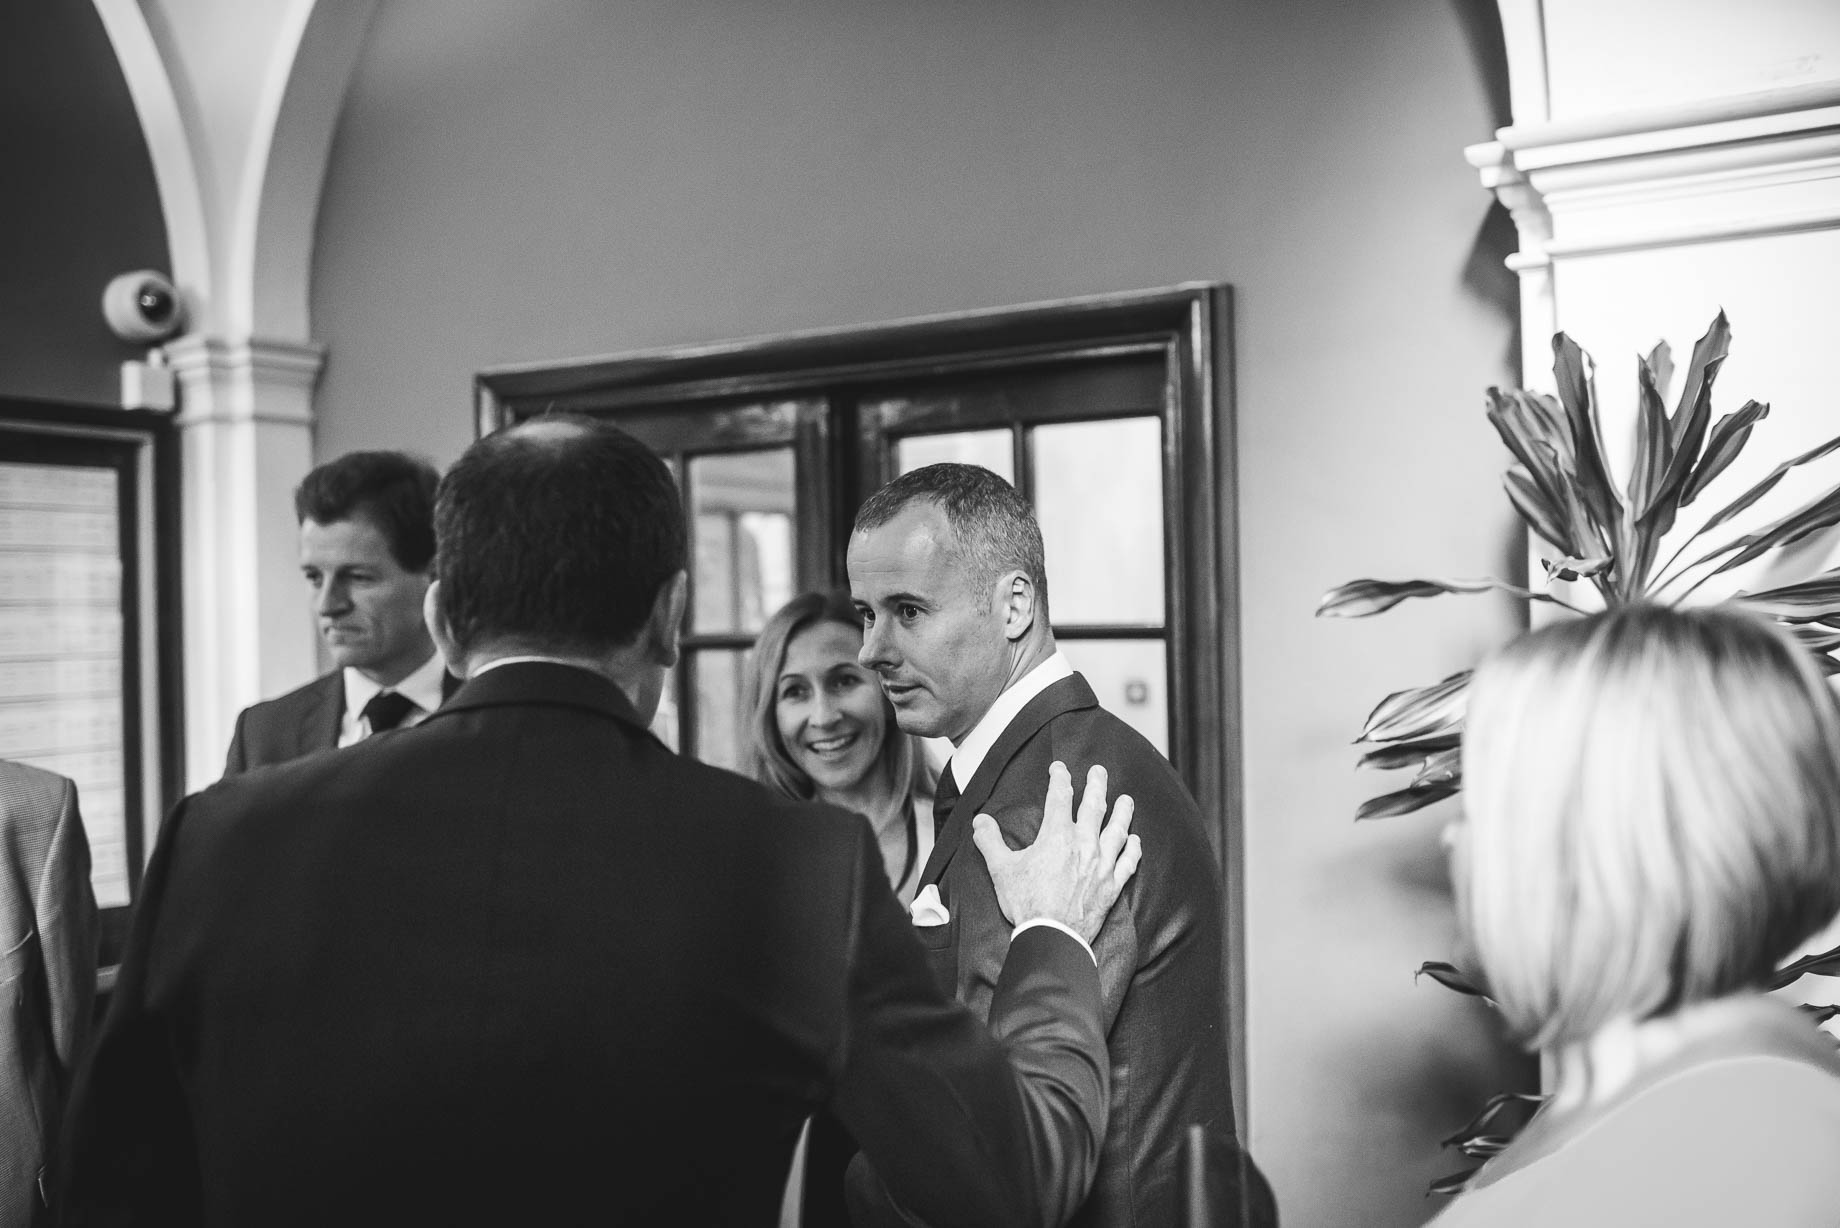 Chelsea and Mayfair wedding photography - Guy Collier - Vicki and Damien (22 of 126)